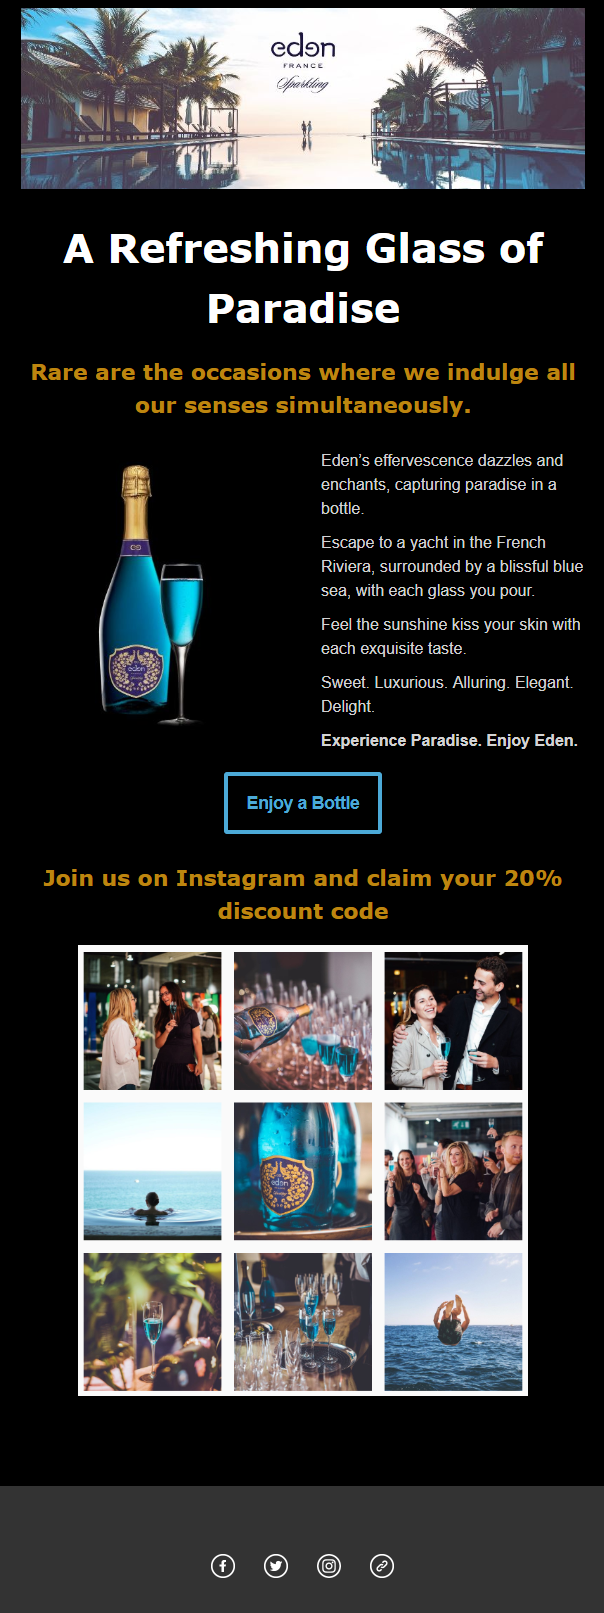 Image of ad for a bottle of wine with text a refreshing glass of paradise